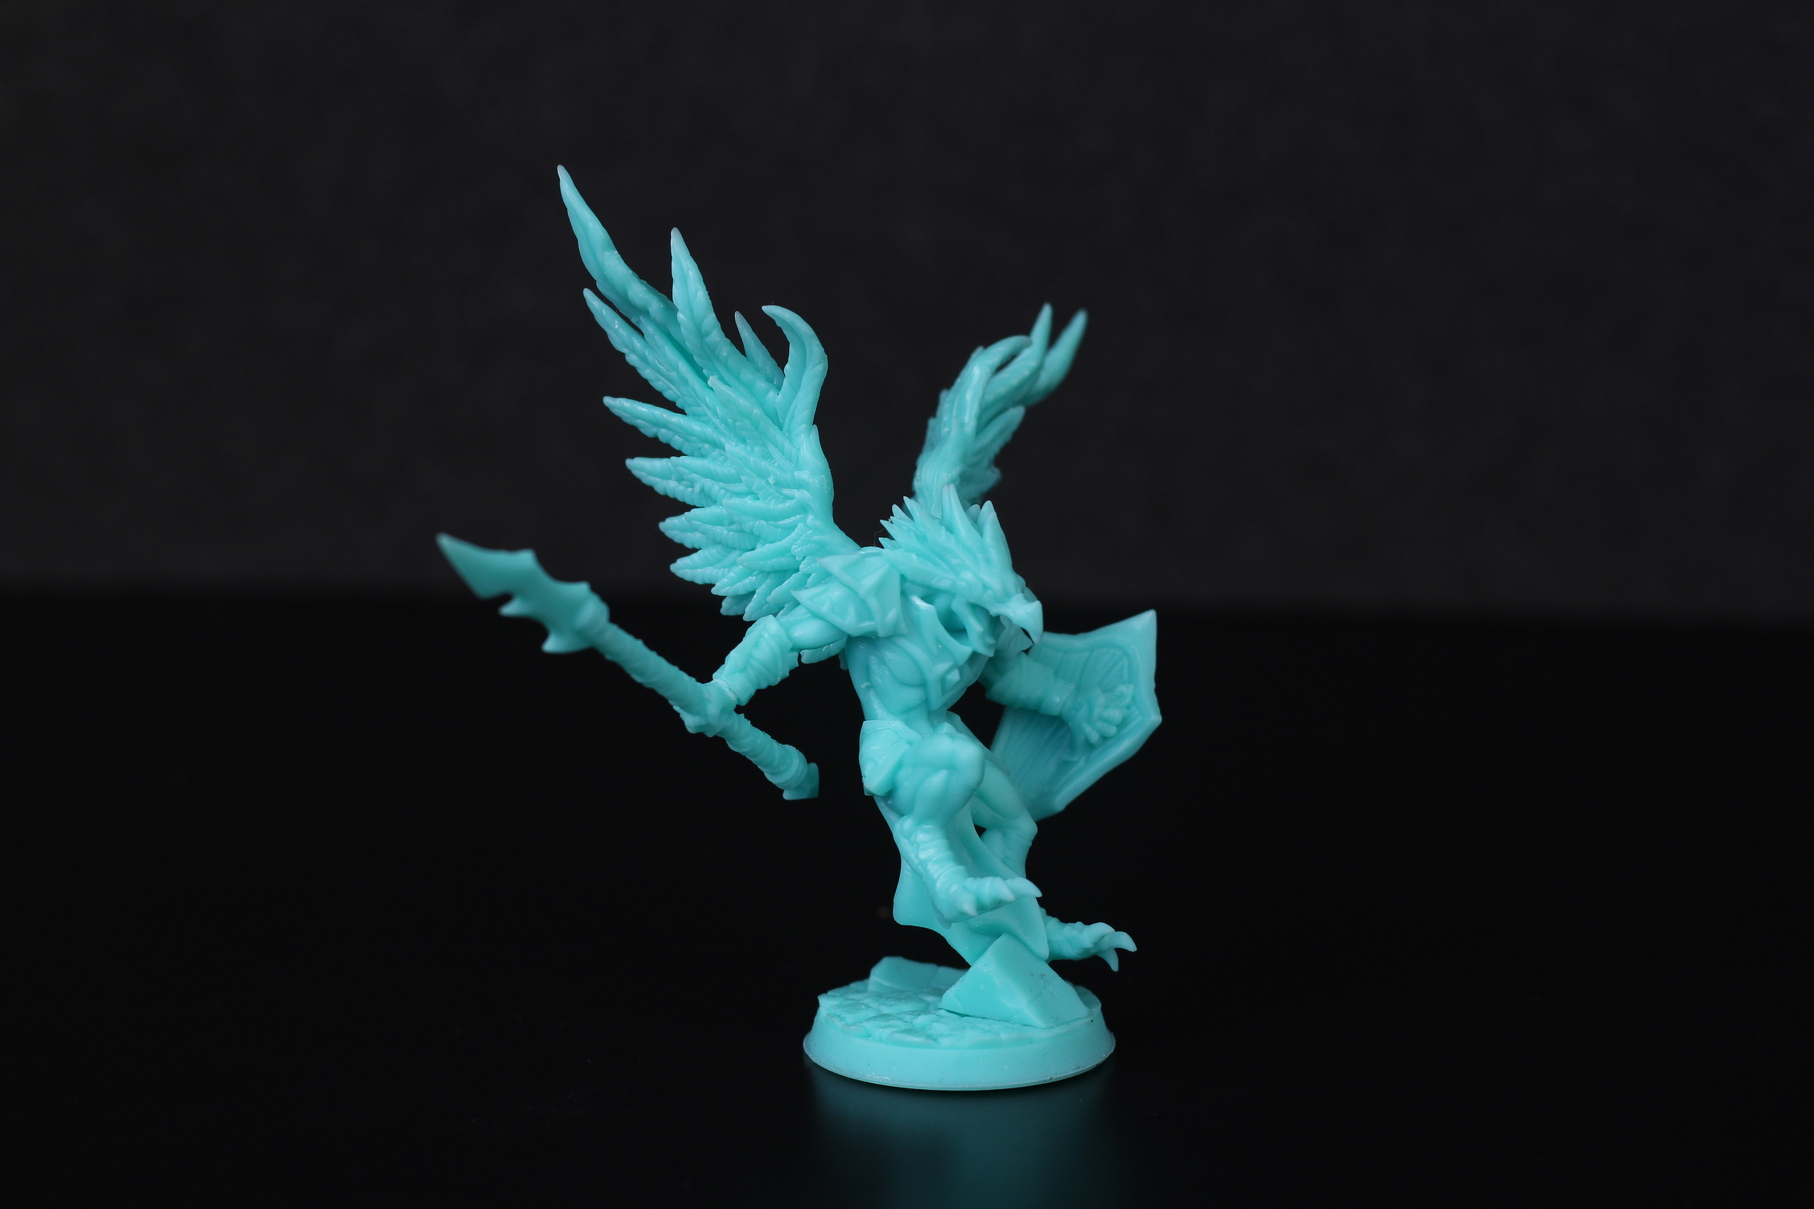 High Gryphkin printed on Anycubic Photon Mono X 2 | Anycubic Photon Mono X Review - Large Format Resin 3D Printer